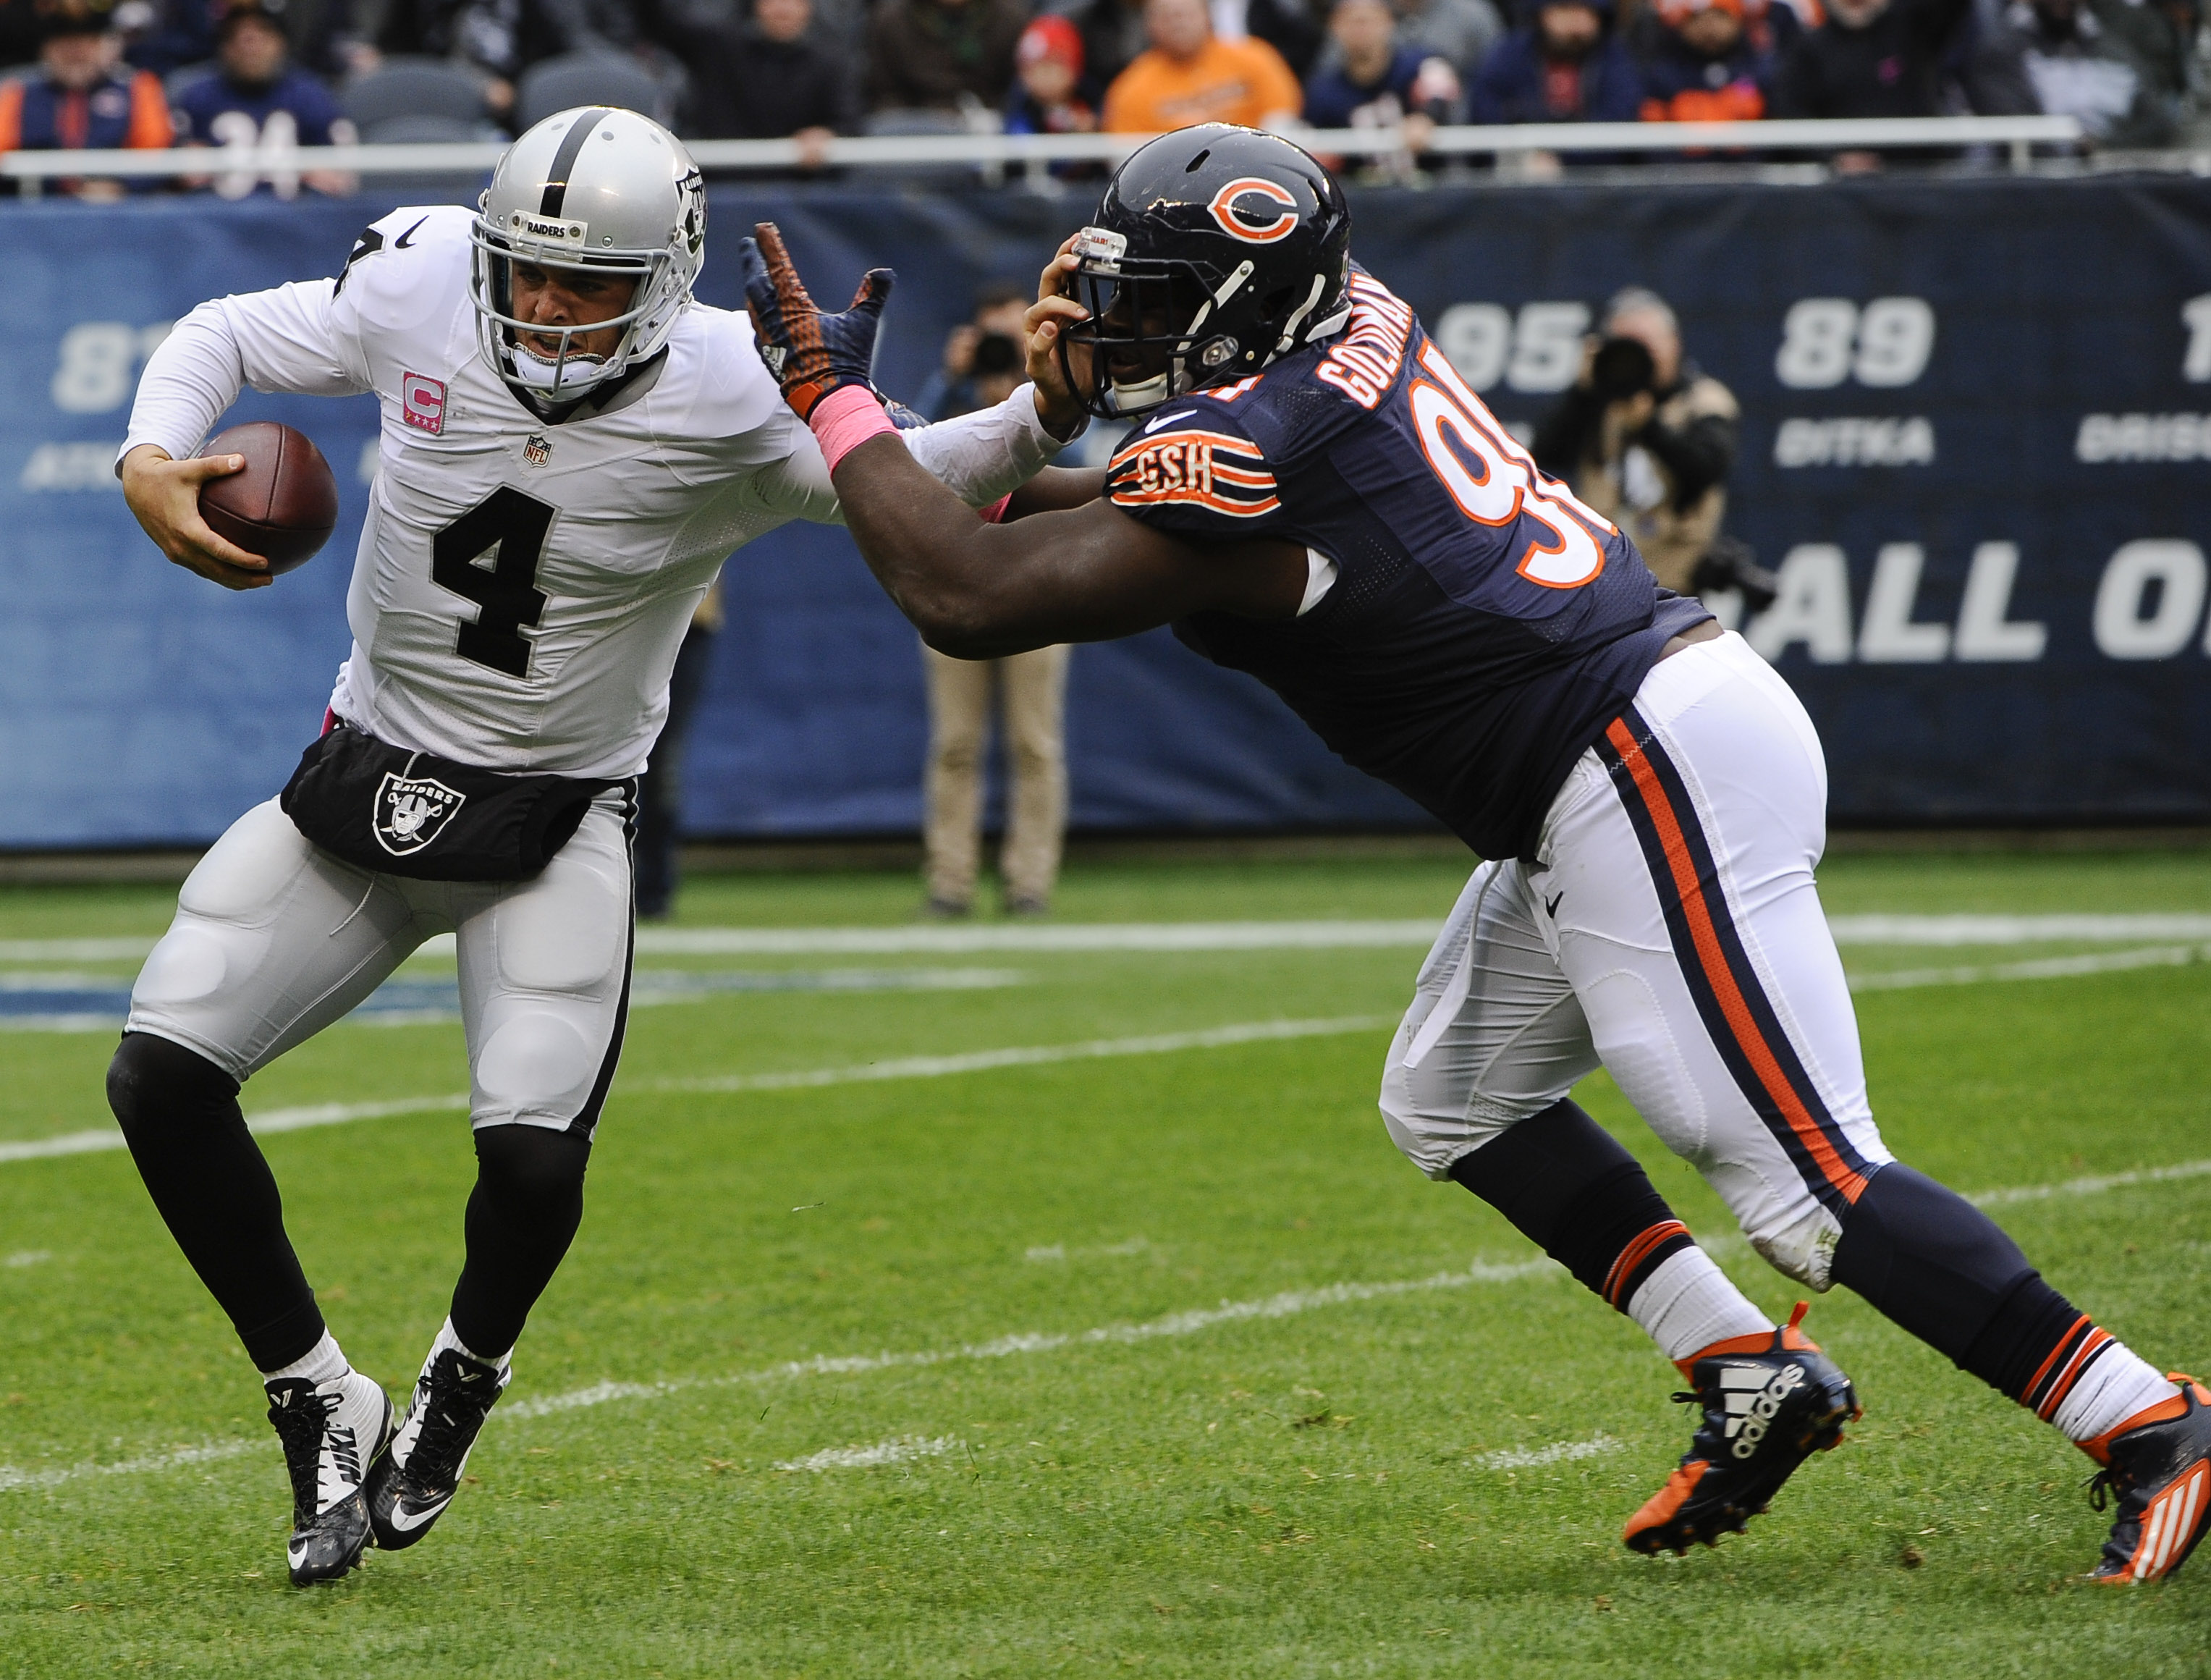 8848414-nfl-oakland-raiders-at-chicago-bears